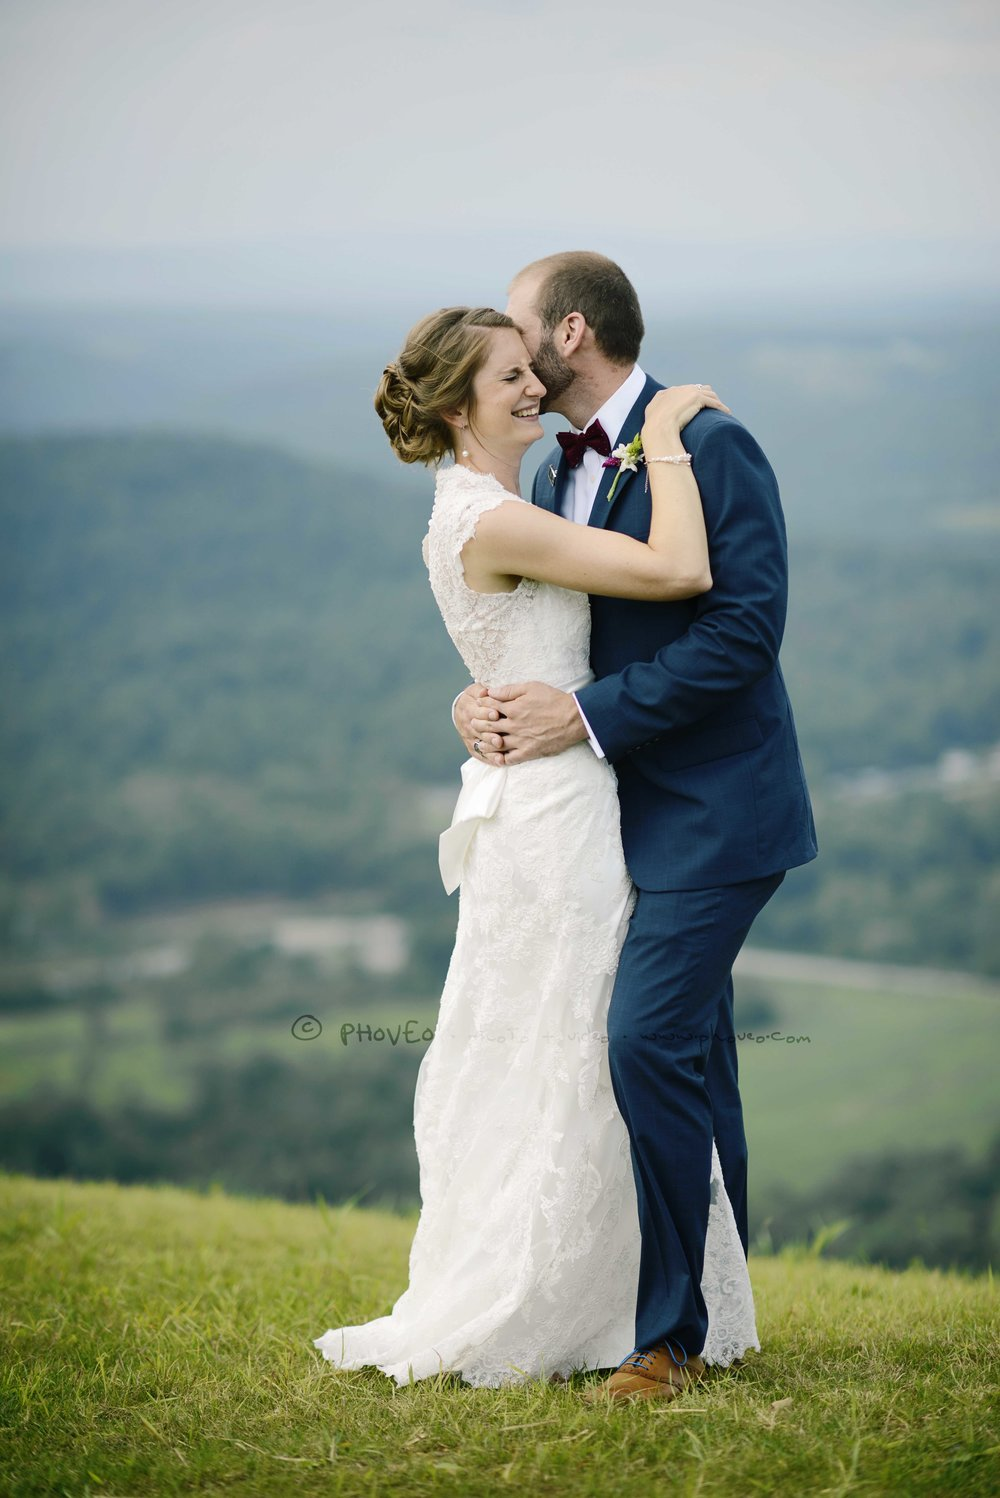 WM_20170812_Lauren+Sean_124.jpg